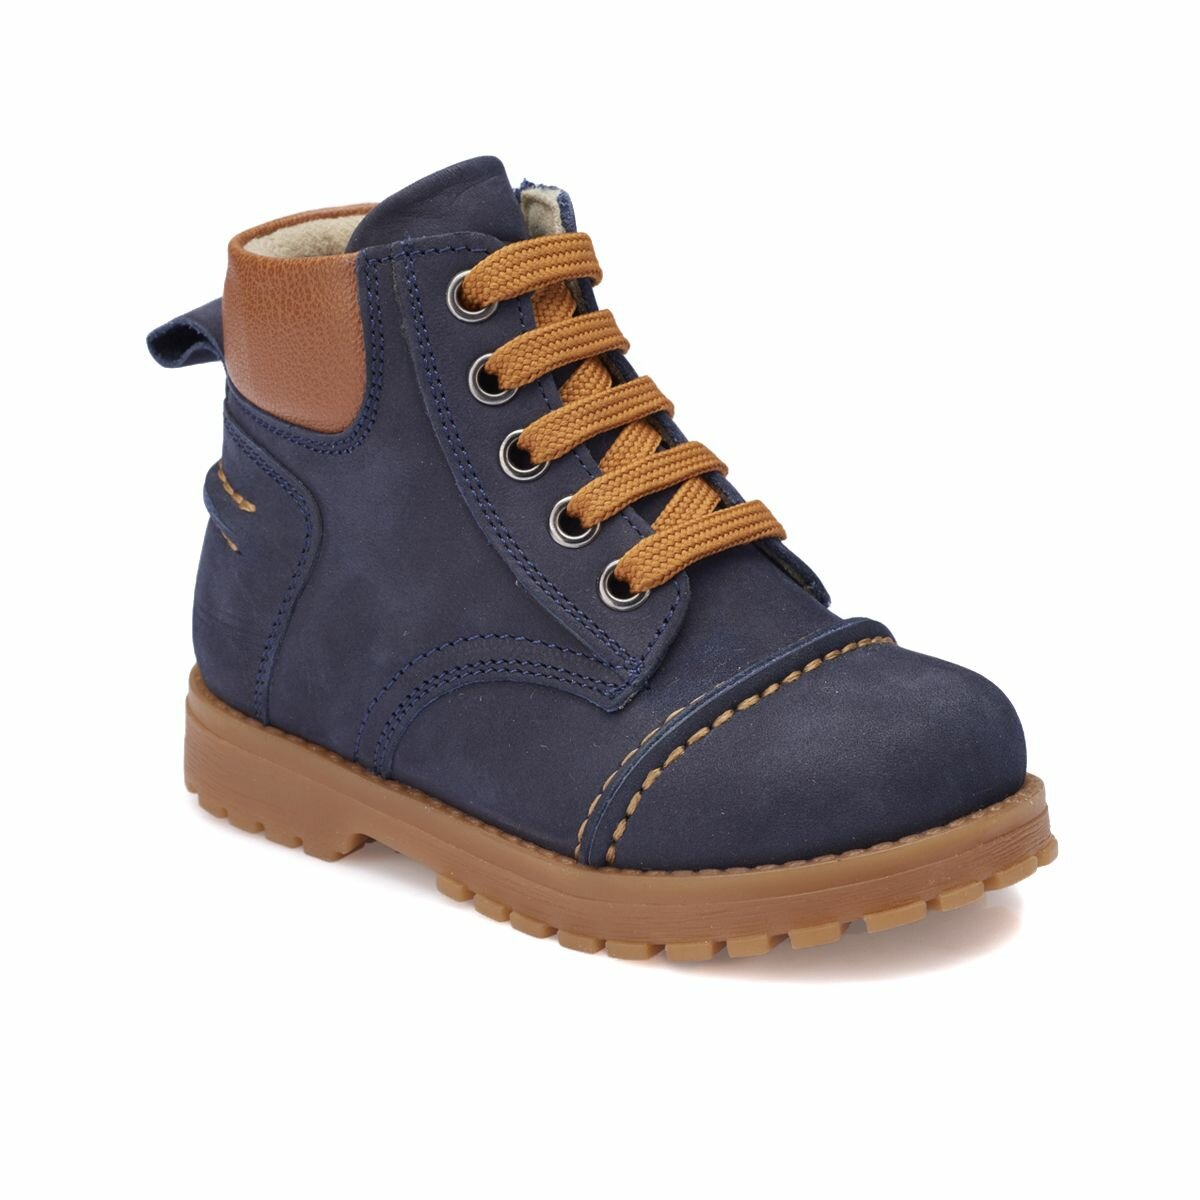 FLO NEPO LEATHER Navy Blue Male Child Boots KINETIX